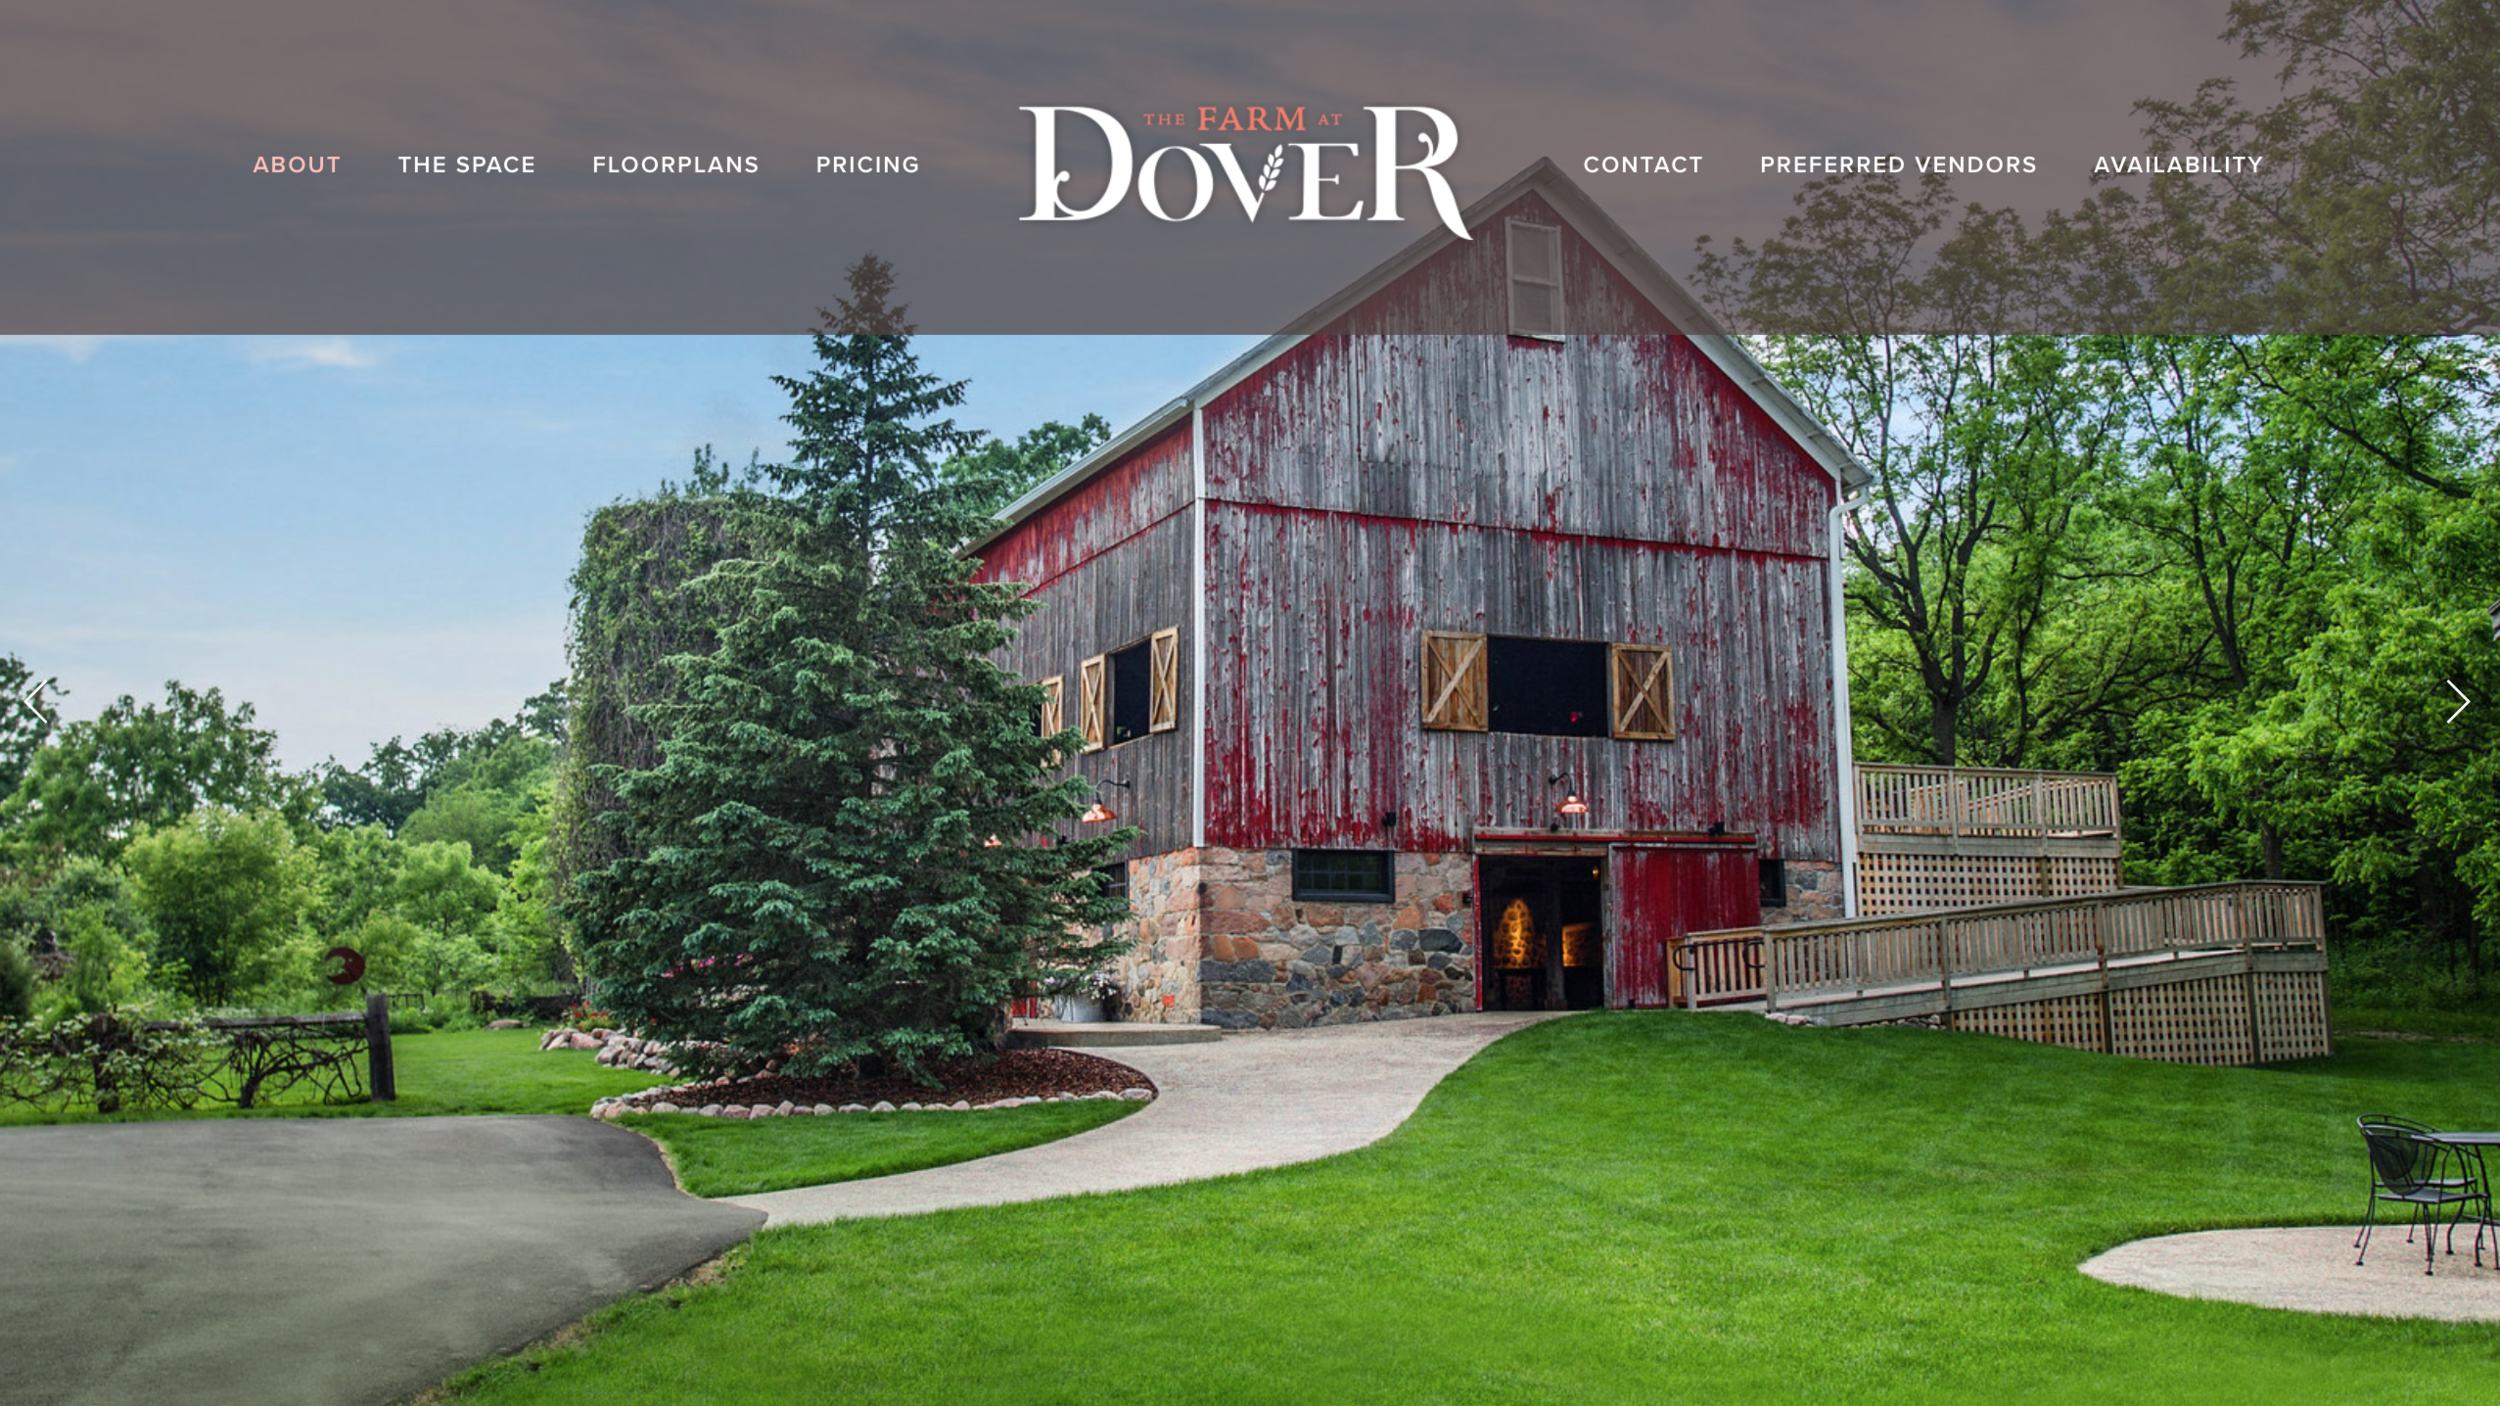 Farm at Dover one page scrolling wedding venue website